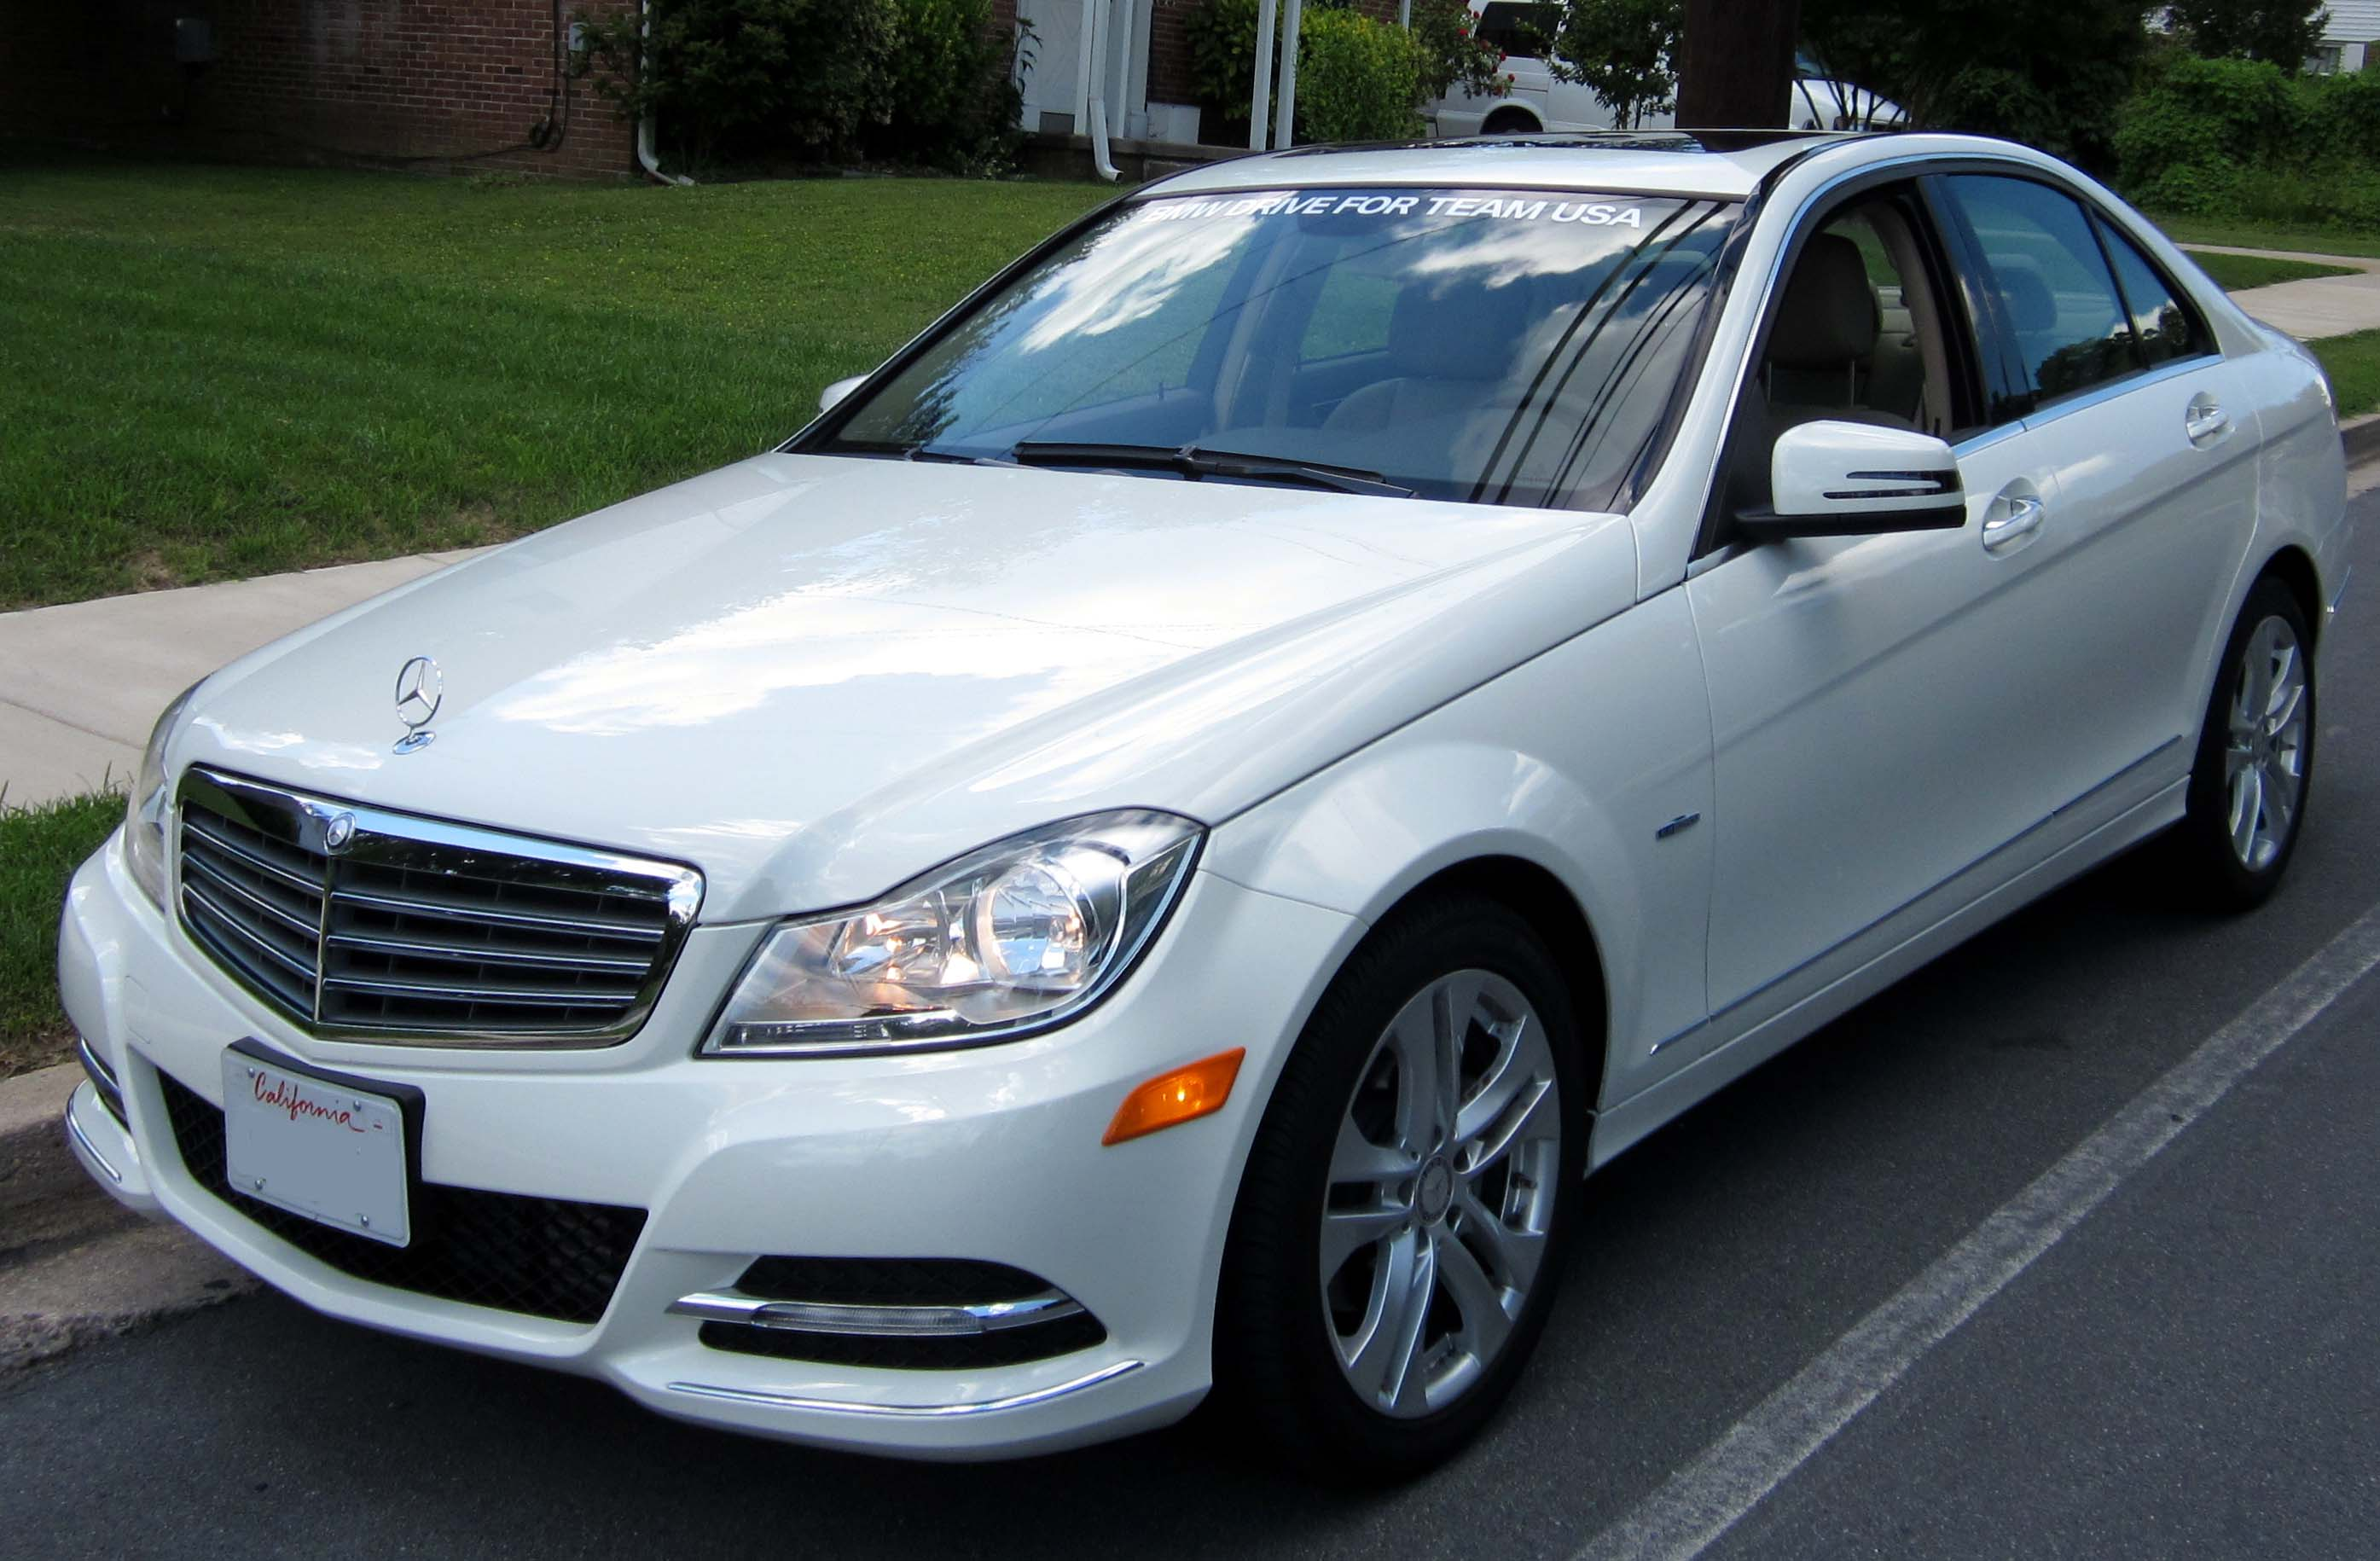 File:2012 Mercedes-Benz C250 -- 06-06-2012 1.JPG - Wikimedia Commons